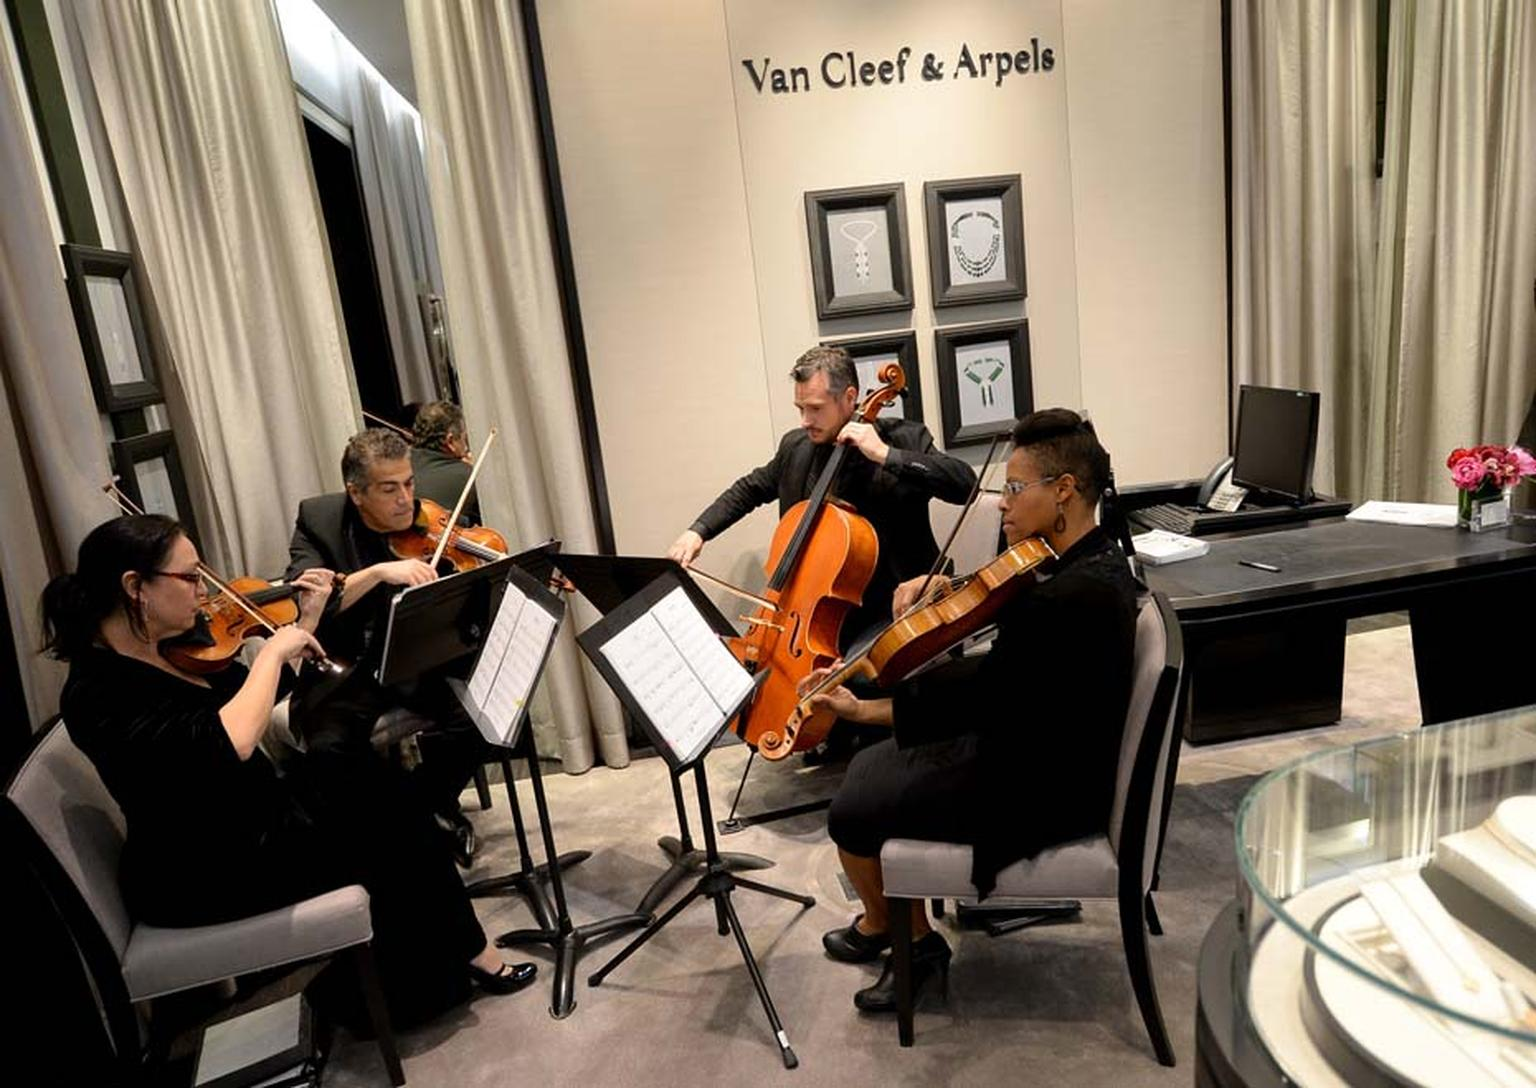 VIP guests enjoyed champagne and a string quartet performance